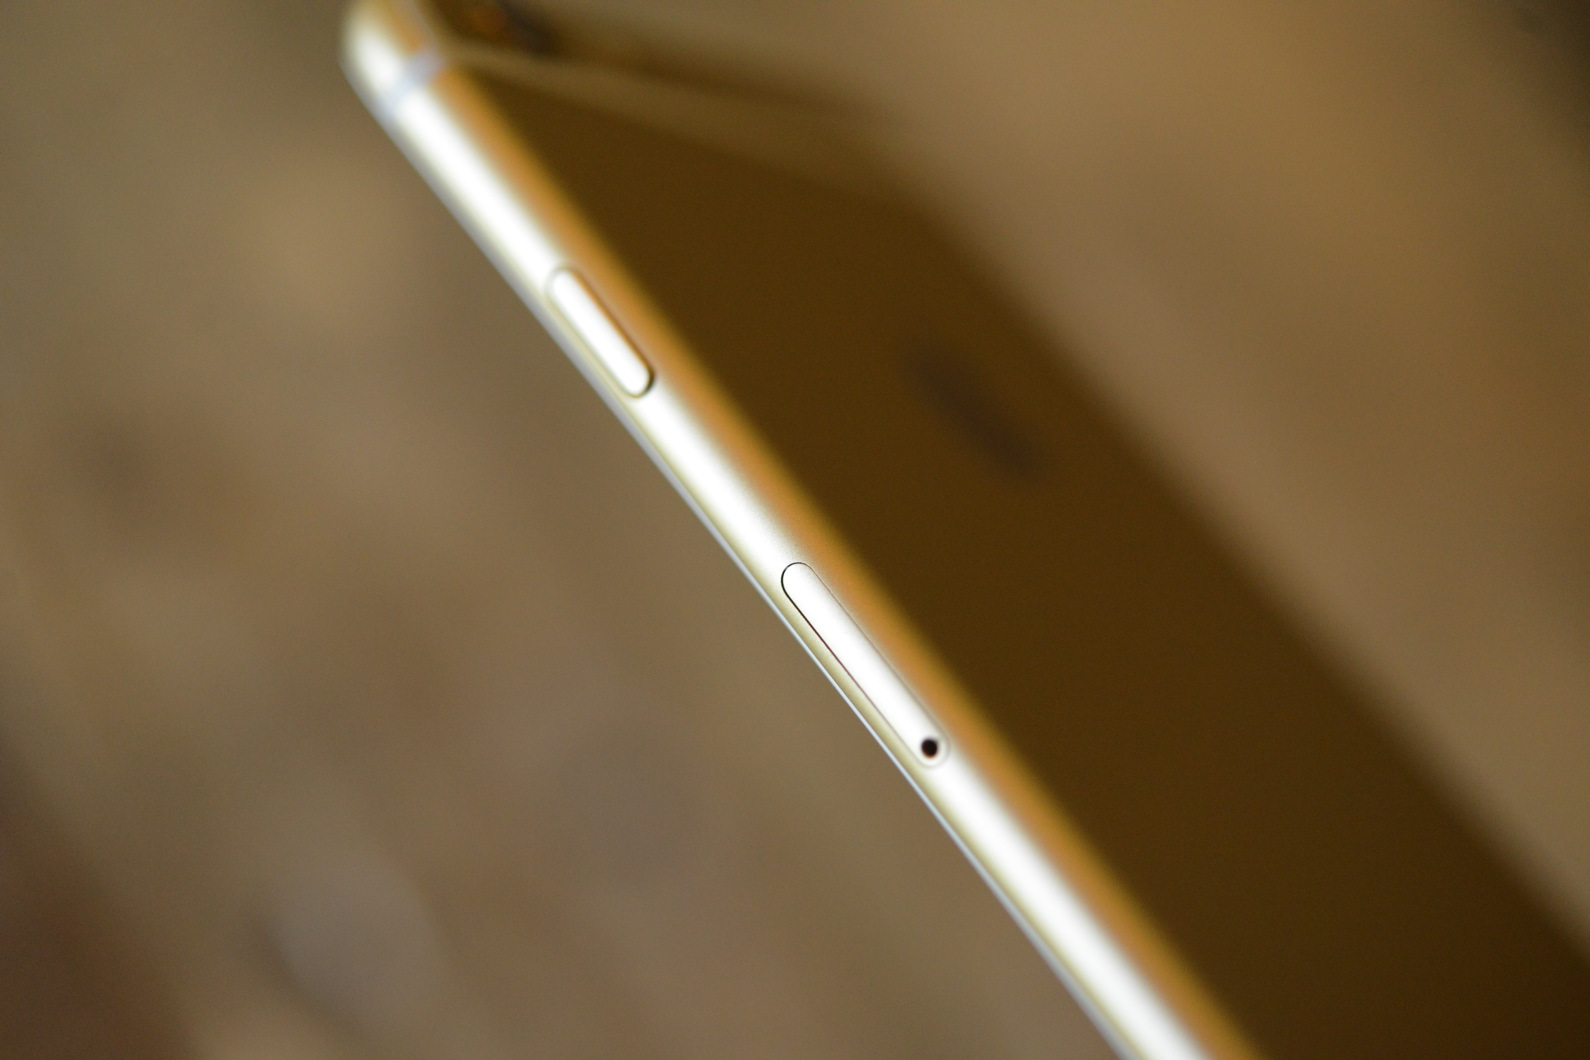 big_iphone6plus-hands-on_2742.jpg